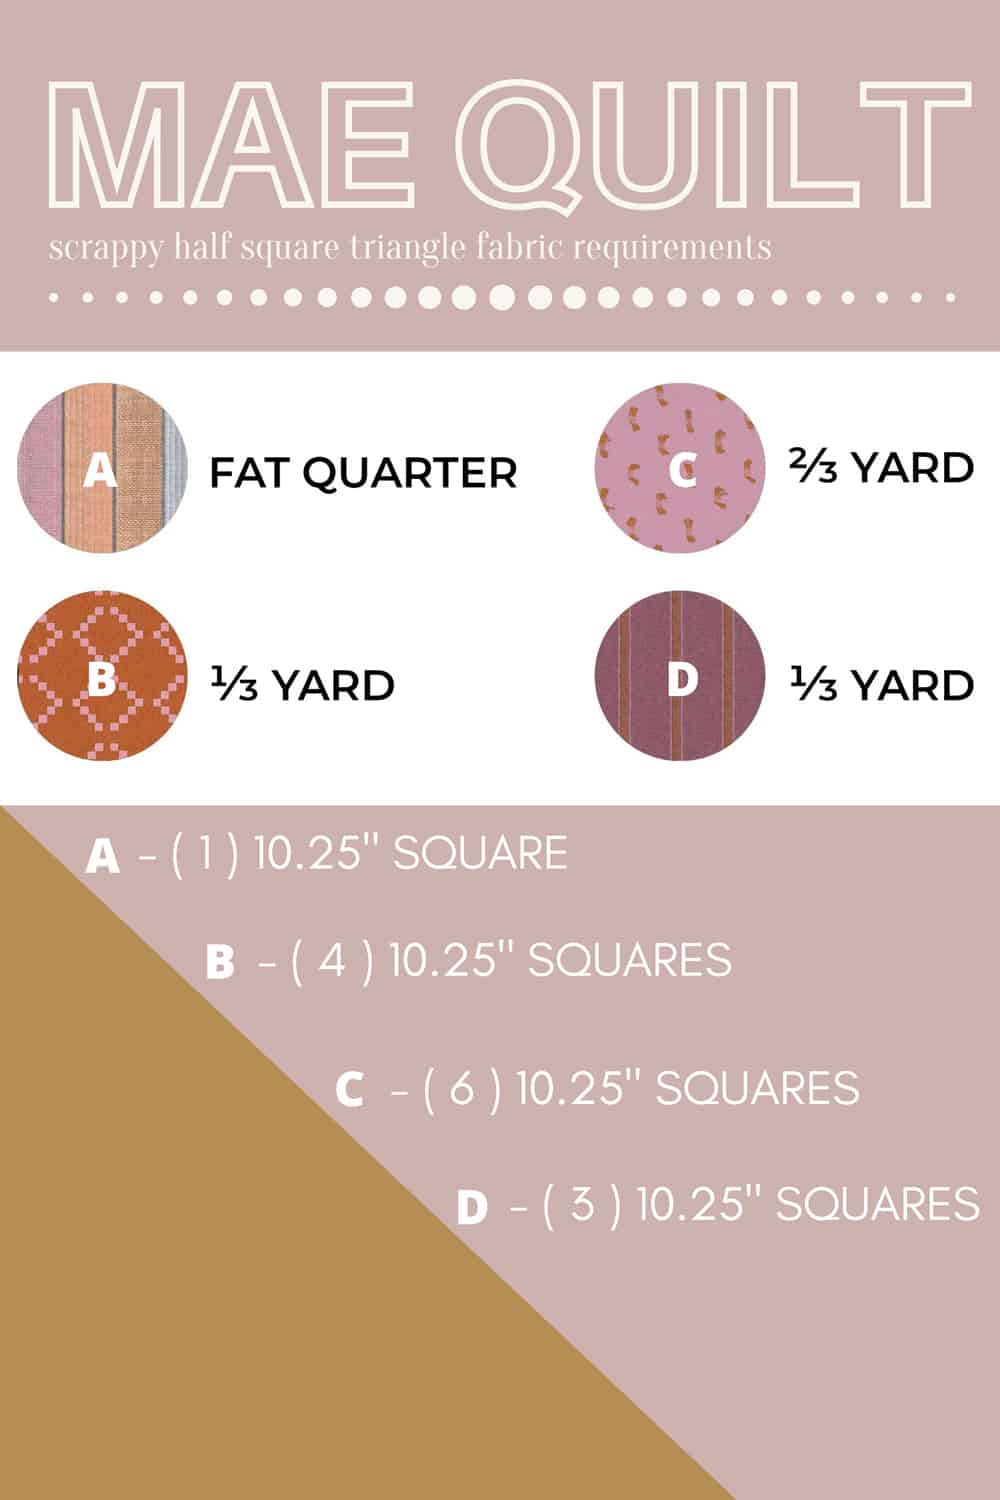 The Mae Quilt Variation - Fabric Requirements